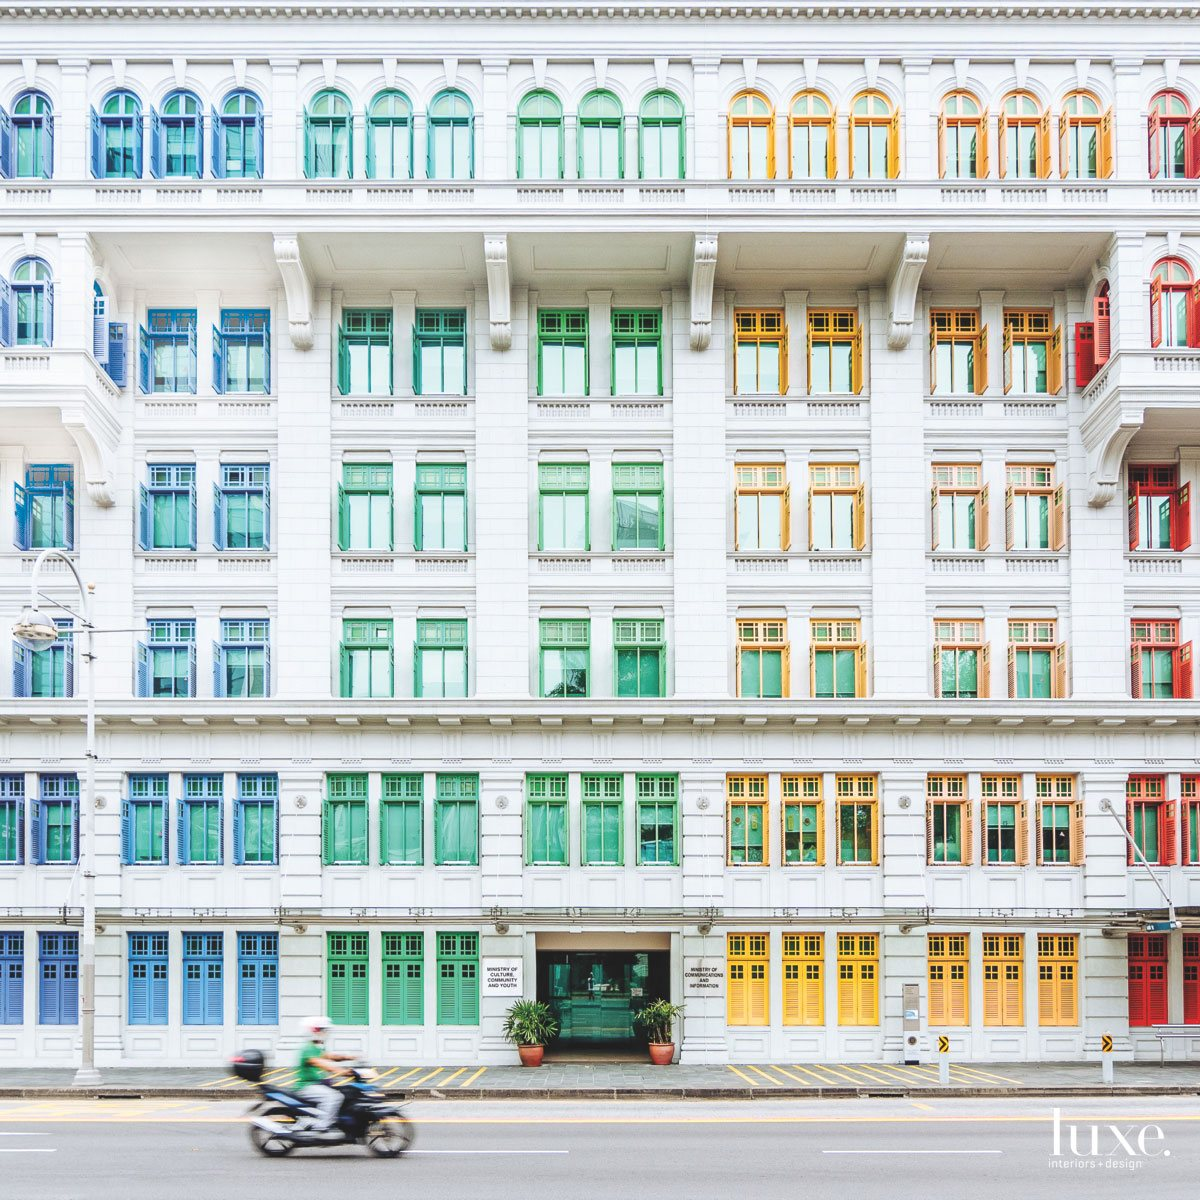 A virtual rainbow colors the window trim and shutters on the facade of a historic Singapore building in this photo by Marc Nouss.